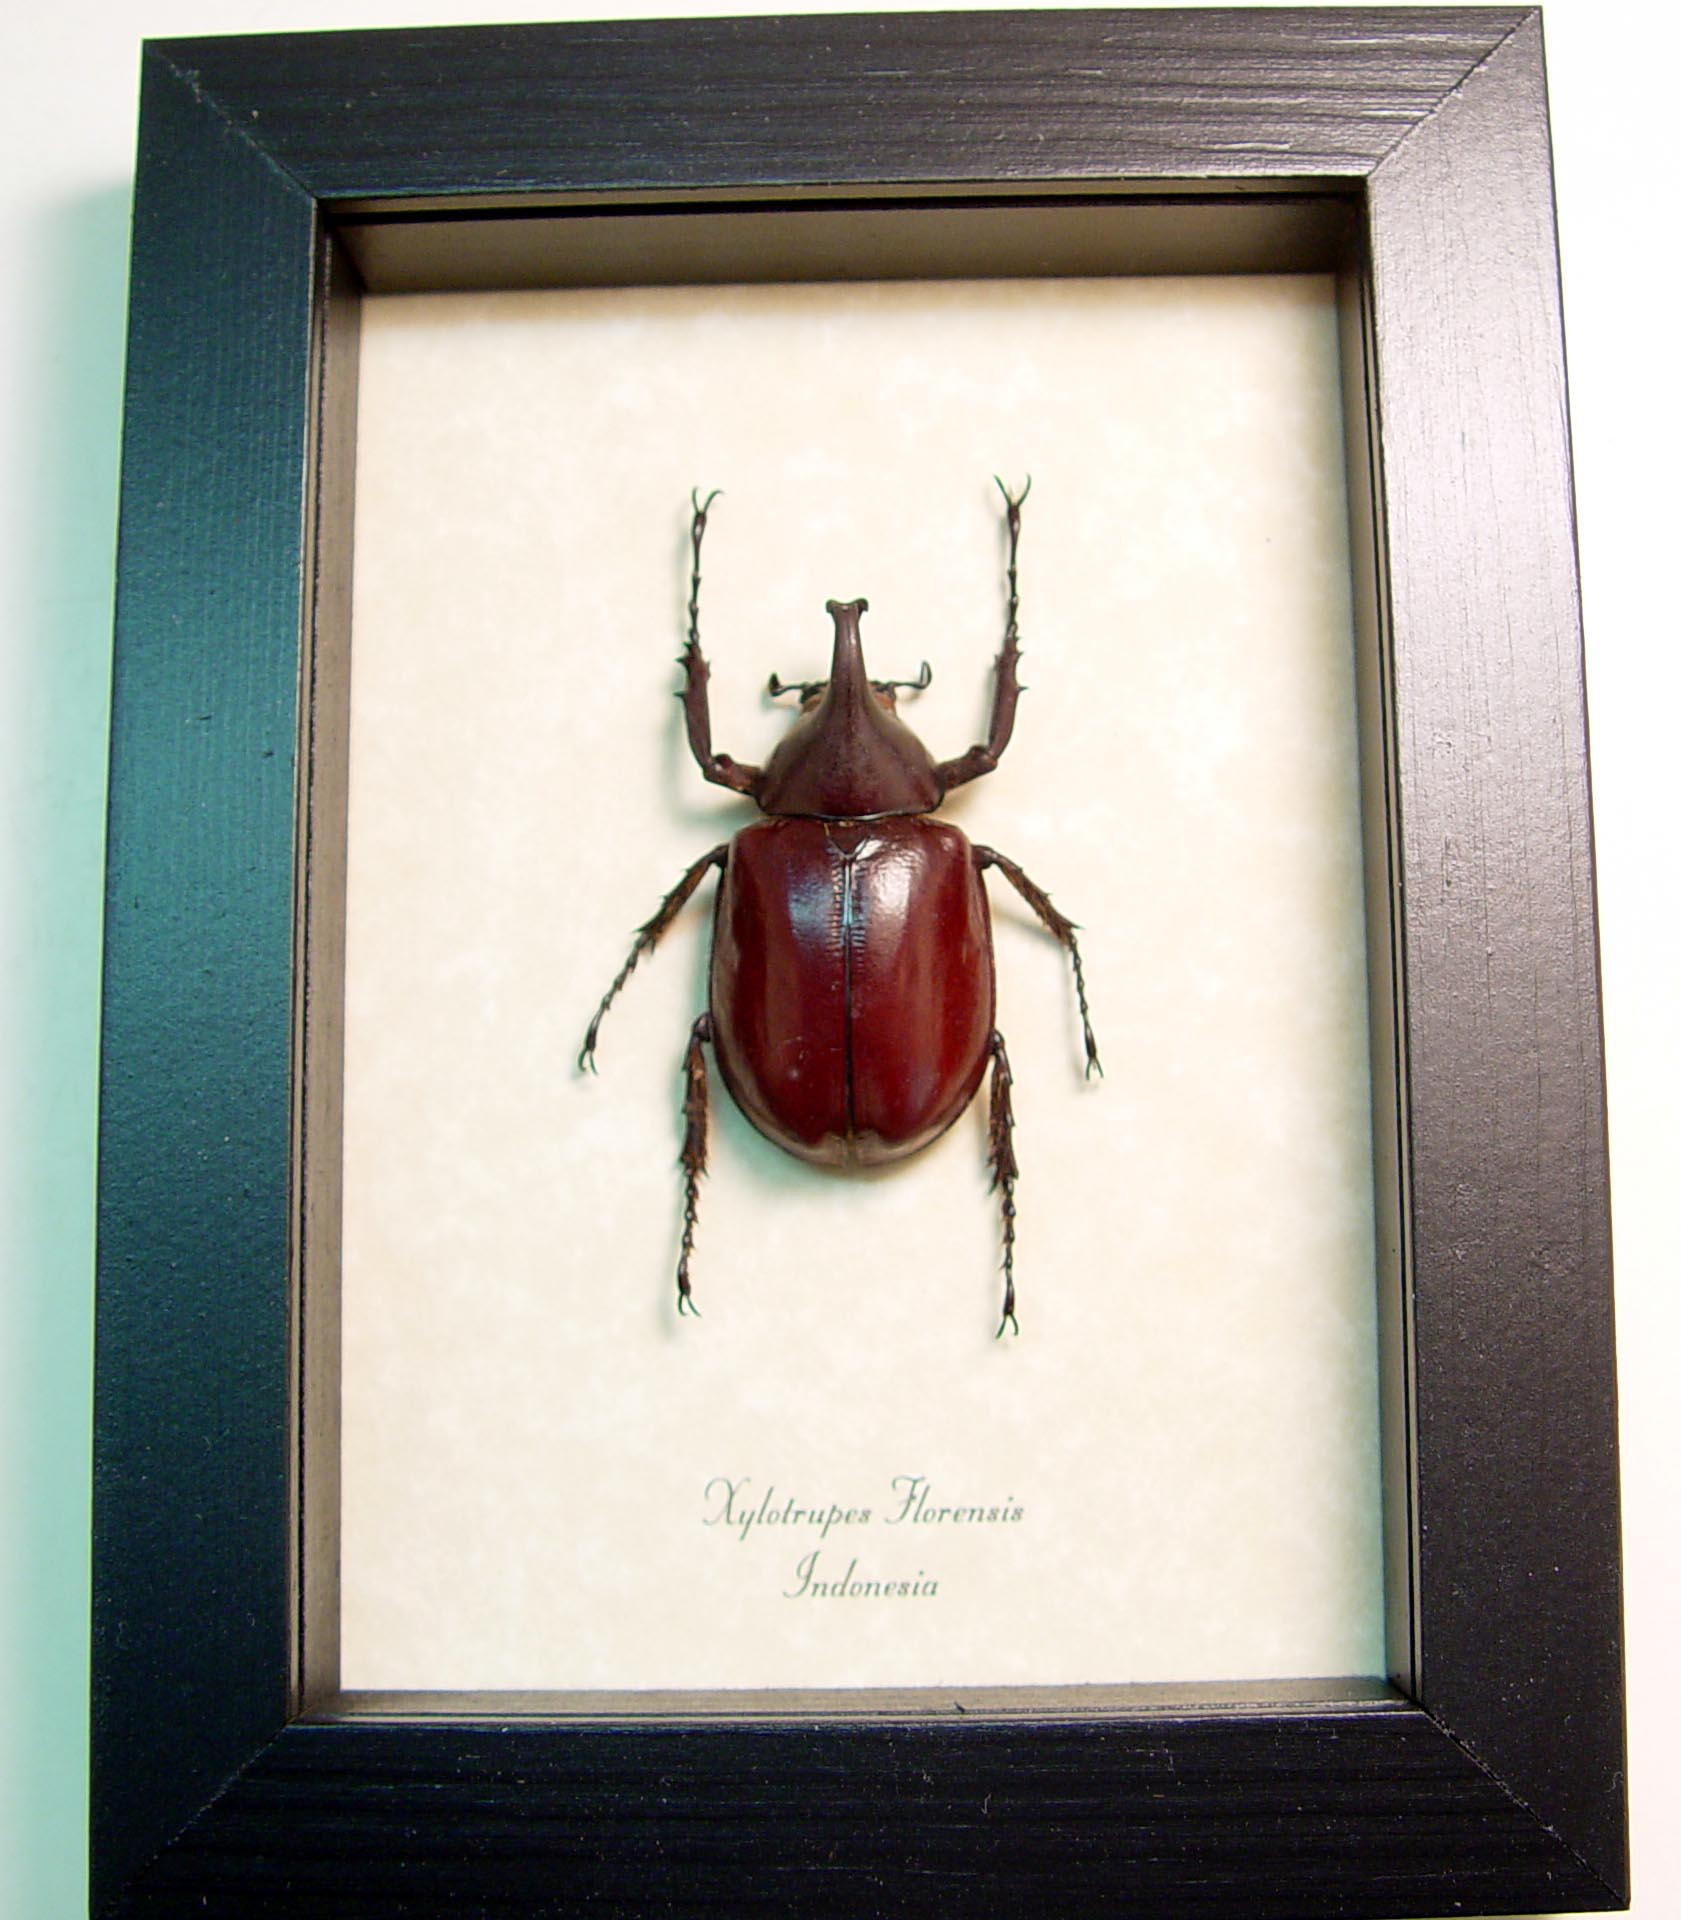 xylotrupes florensis wholesale insects butterfly designs real framed butterflies insects bat displays